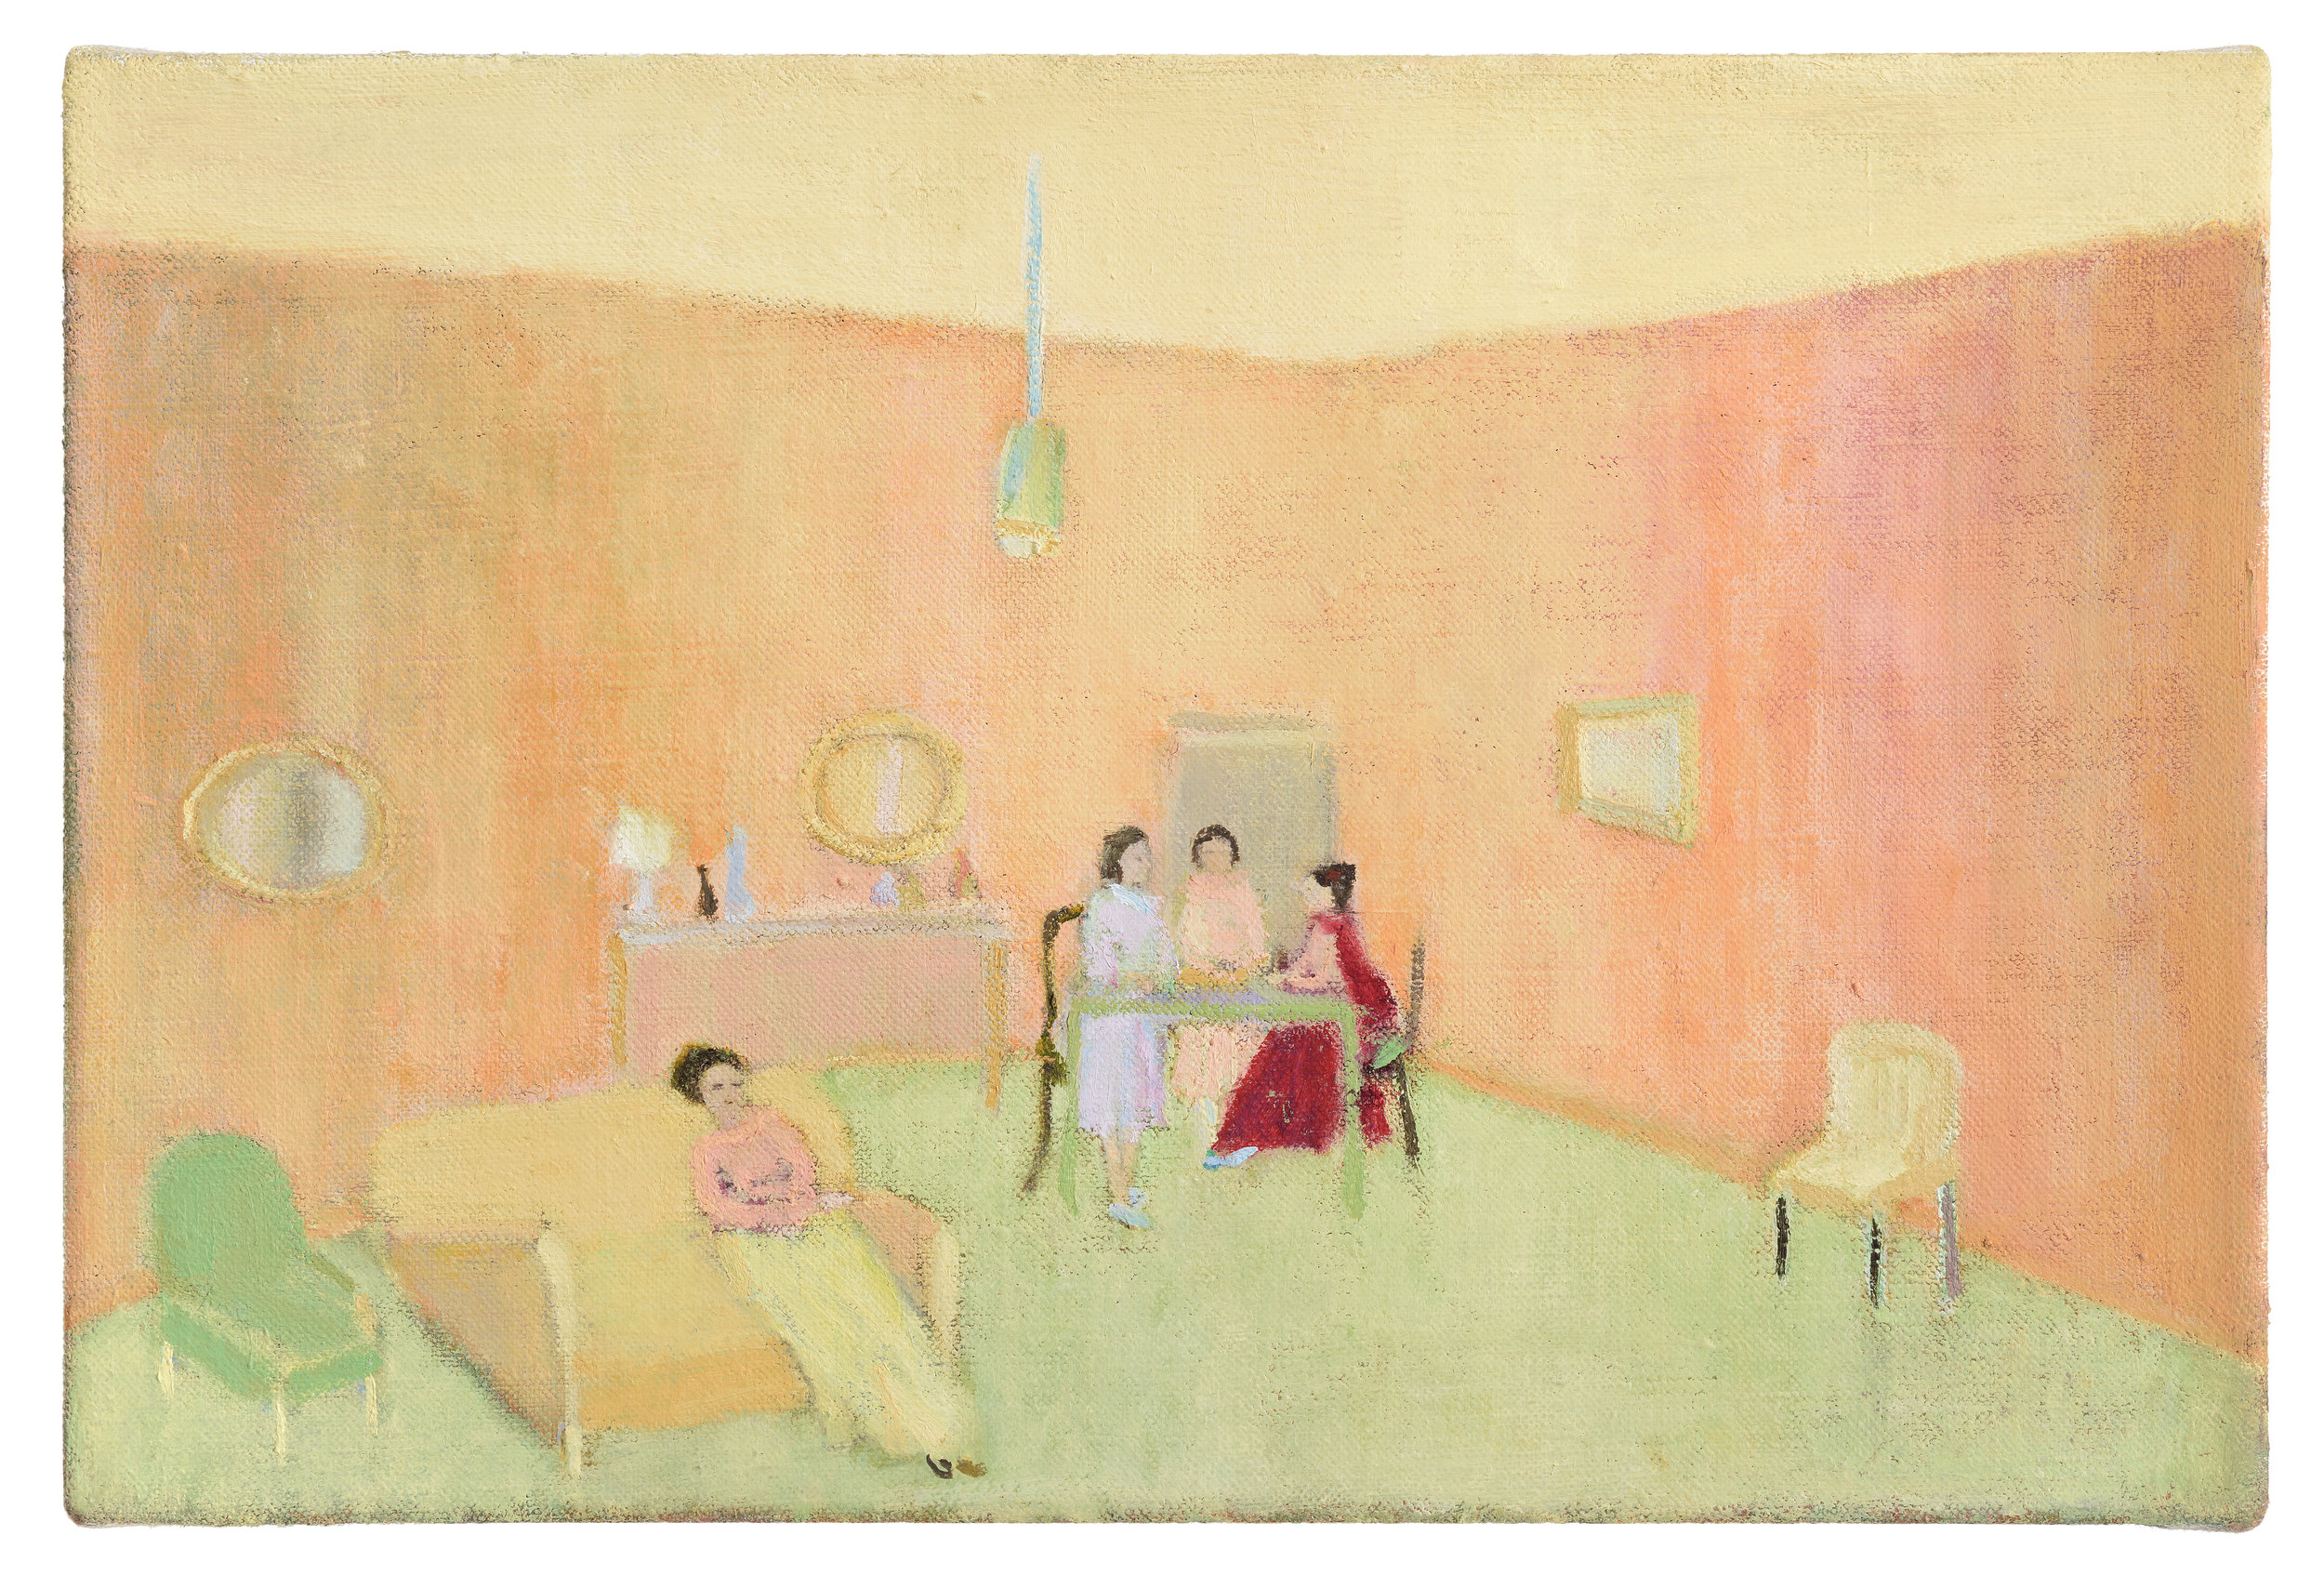 Kathleen, Alice, Hannah and Mary front room, 2015, Oil on linen, 20 x 30 cm